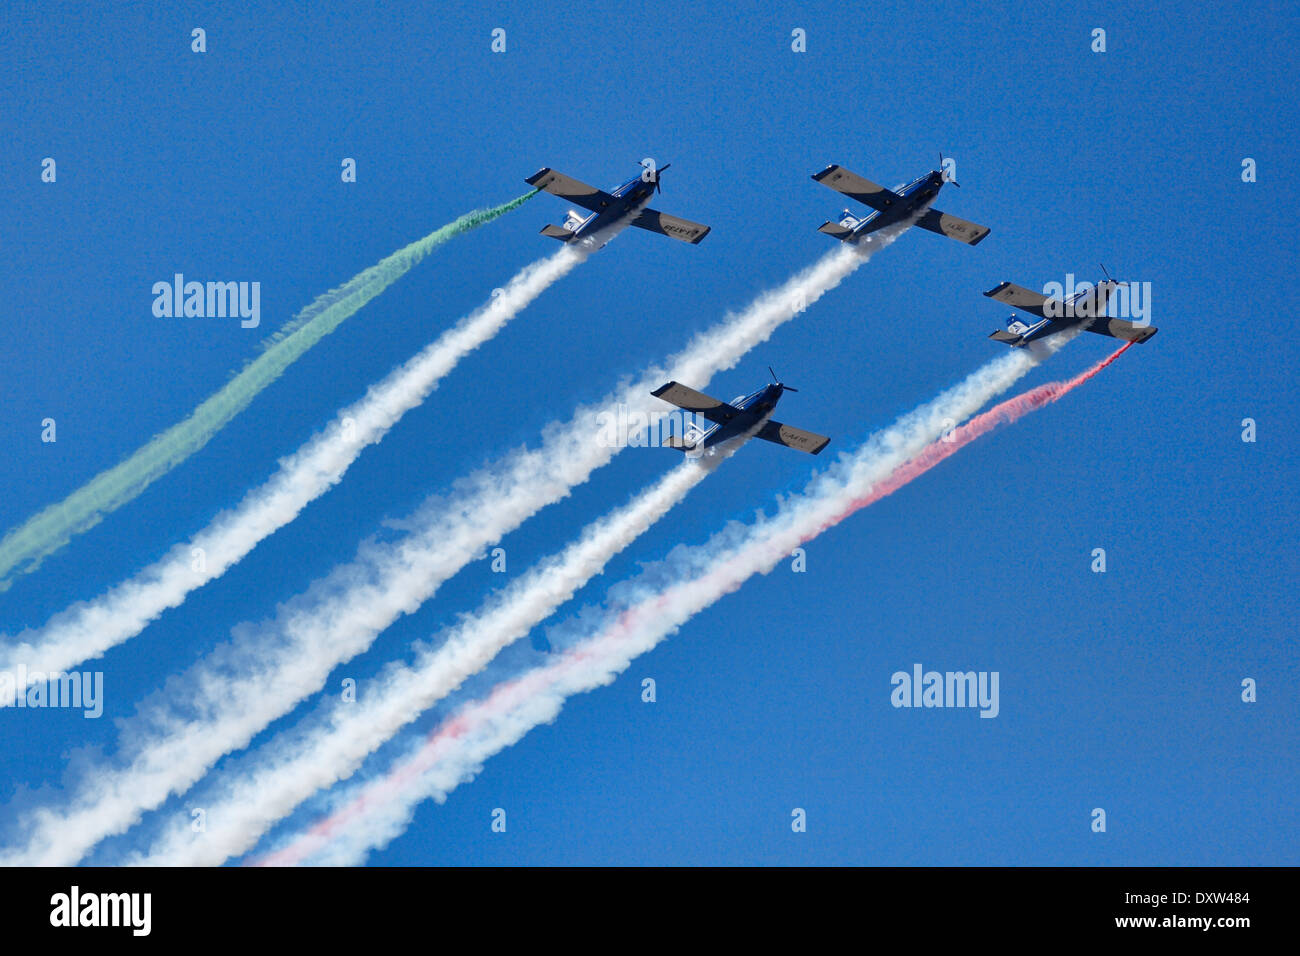 Aerobatic Airplane group formation during Air Show in Athens, Greece - Stock Image